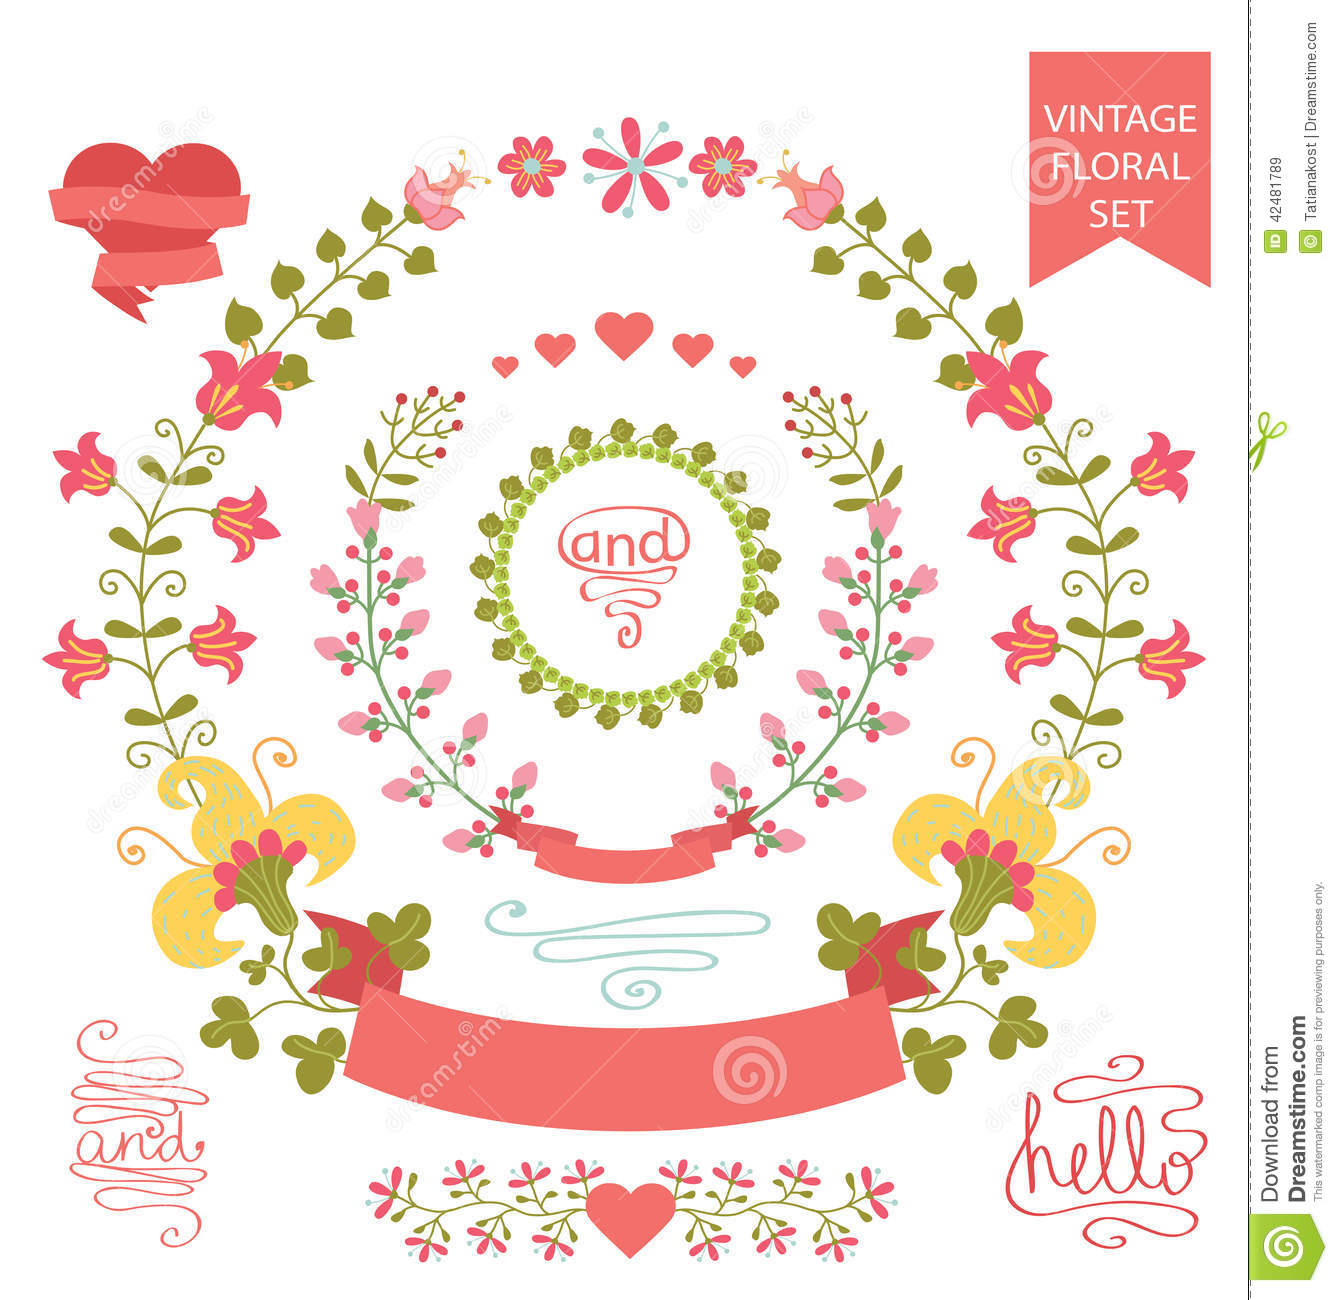 Hearts And Stars Kitchen Collection Doodles Cute Elements Vector Illustration Cartoondealer